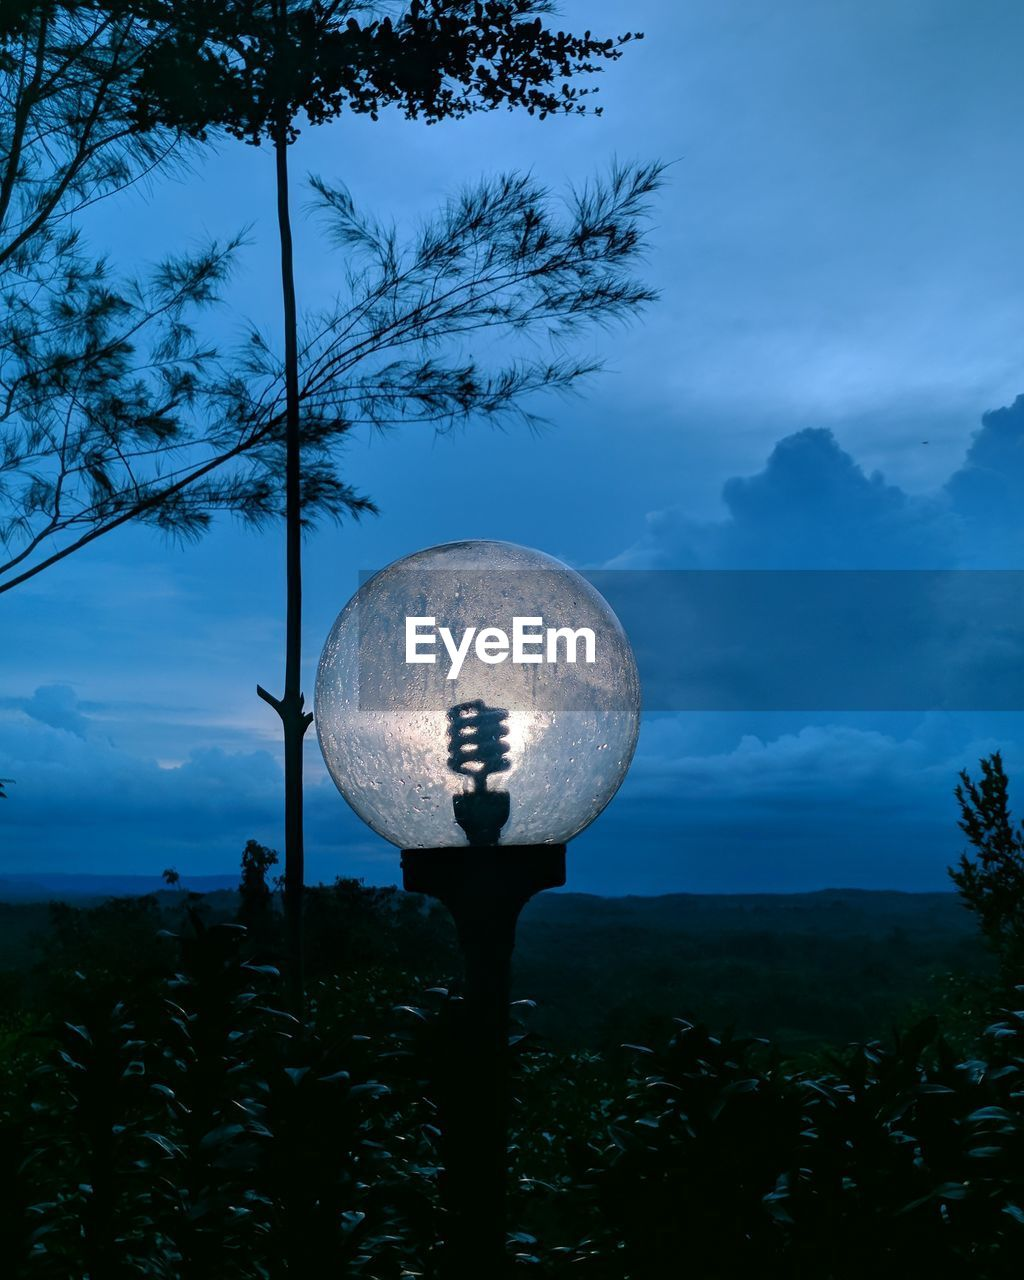 sky, tree, plant, cloud - sky, beauty in nature, nature, growth, dusk, silhouette, scenics - nature, no people, land, outdoors, tranquility, sphere, tranquil scene, night, non-urban scene, blue, idyllic